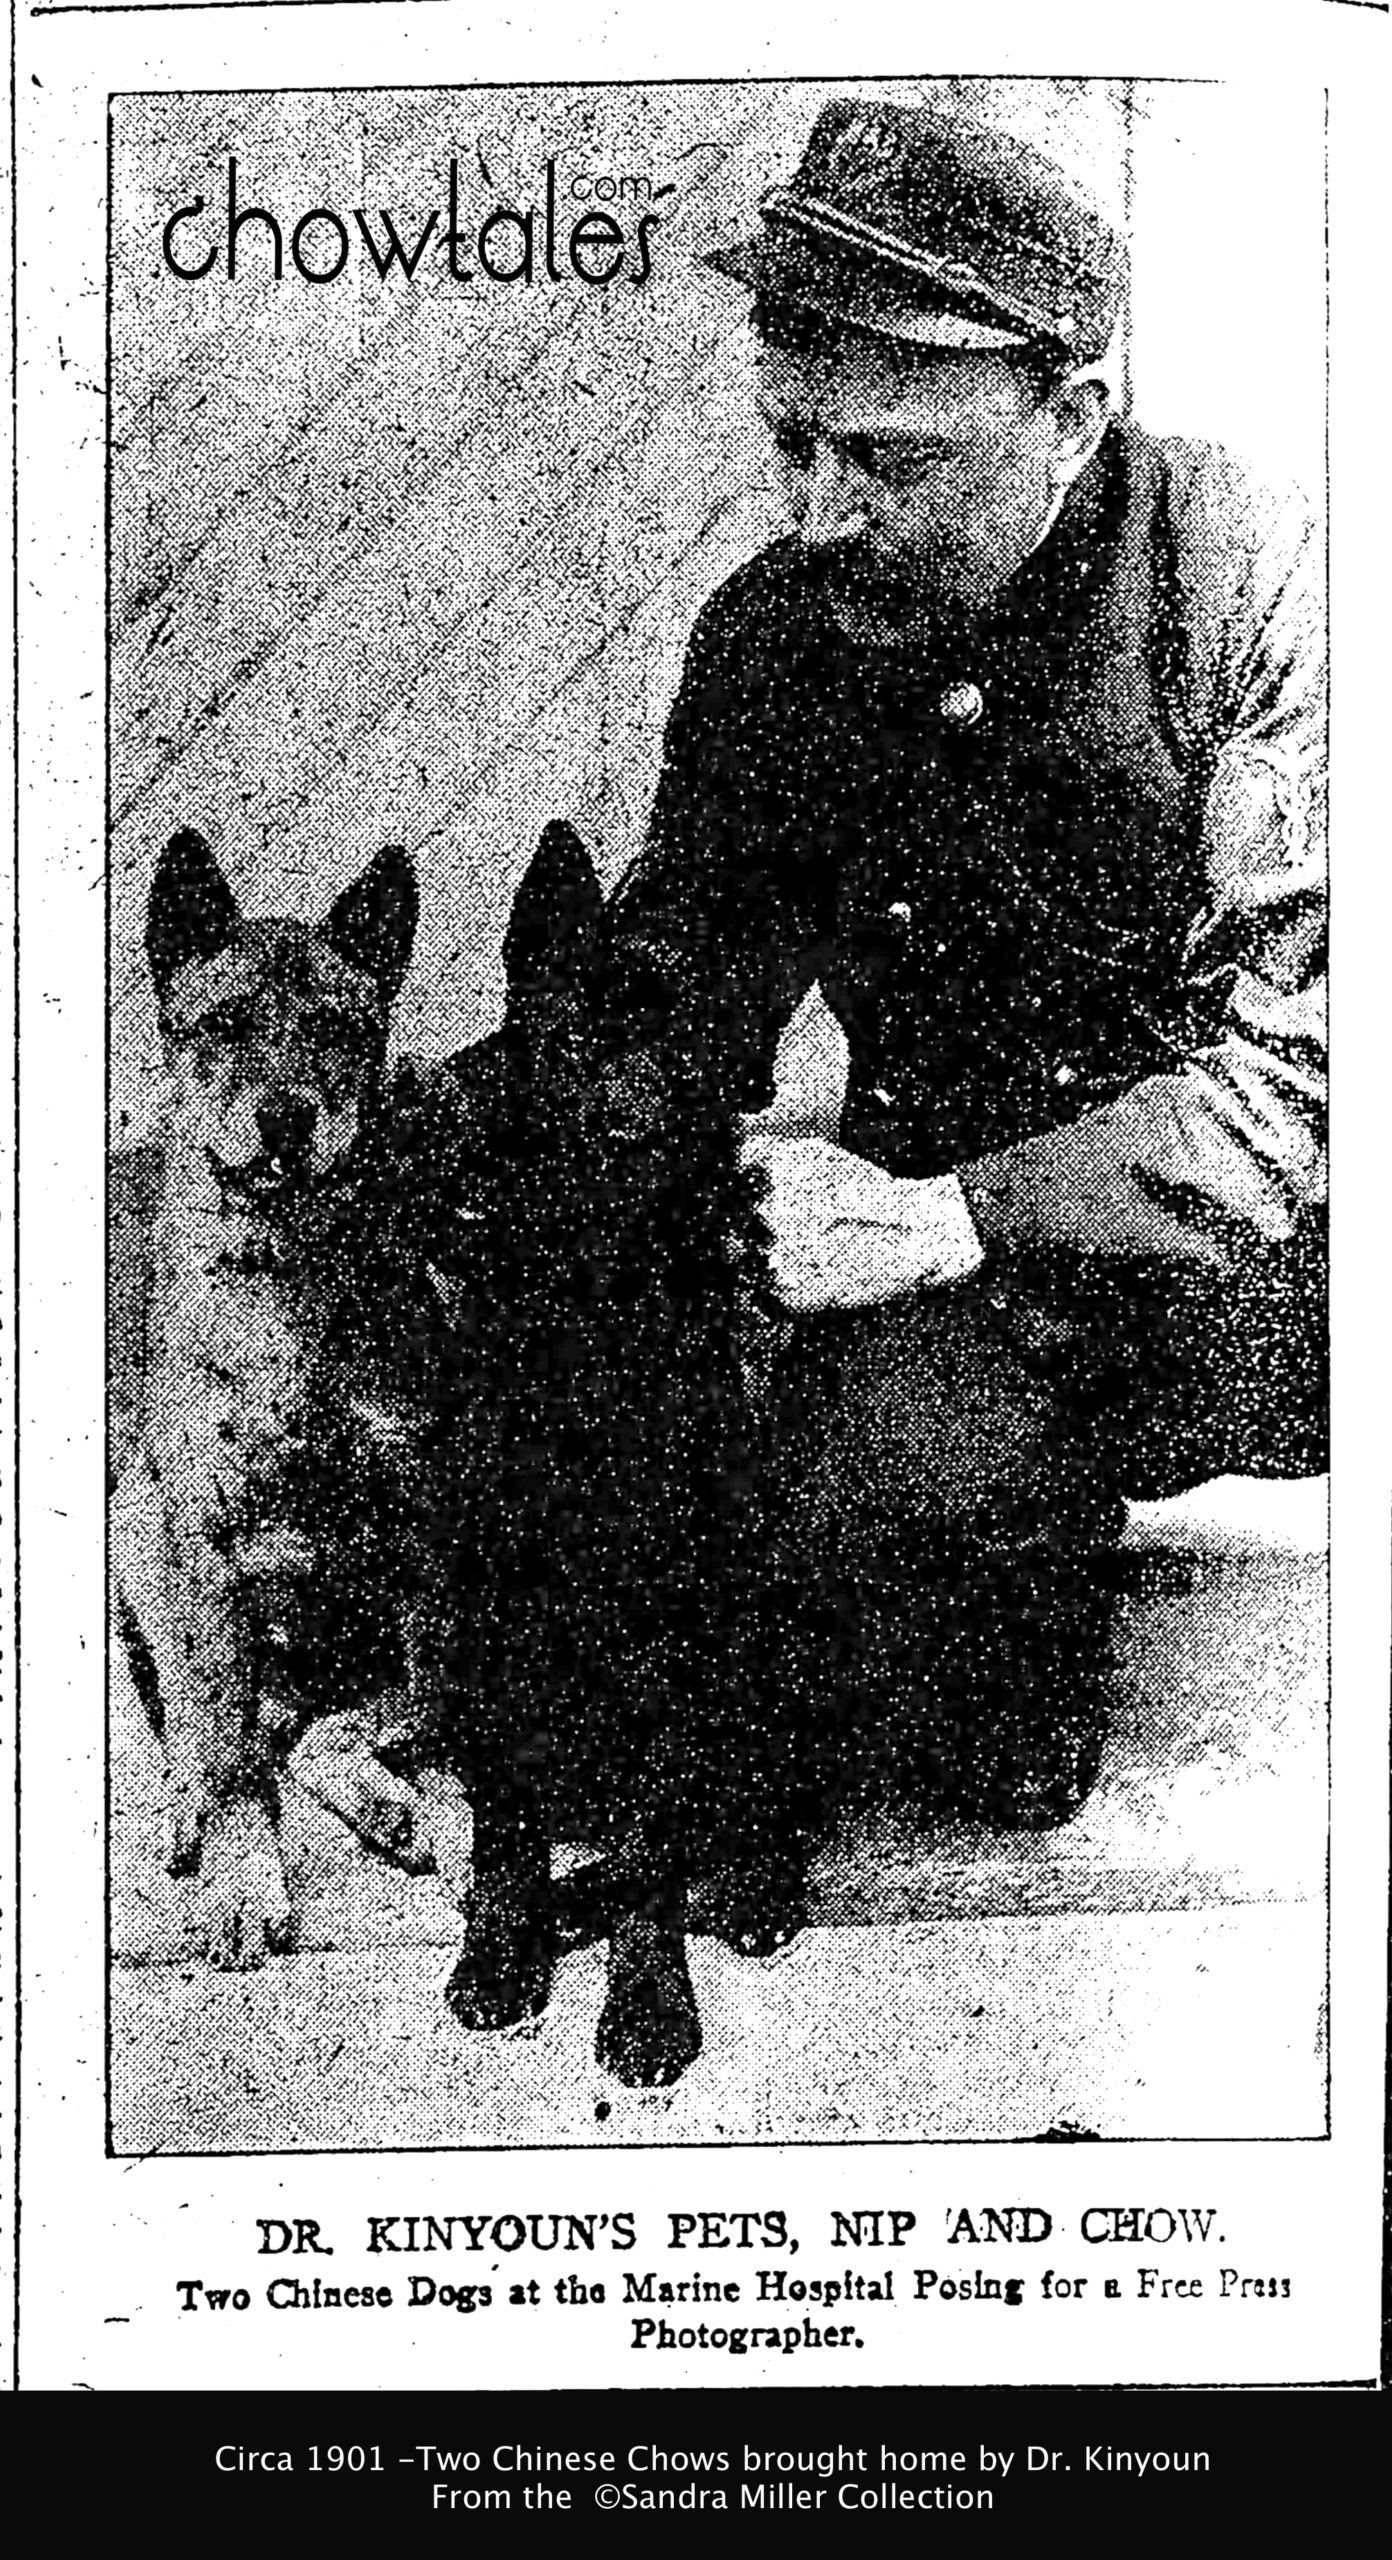 DR KINYON 1901 BRINGS 2 CHINESE DOGS TO MARINE HOSPITAL